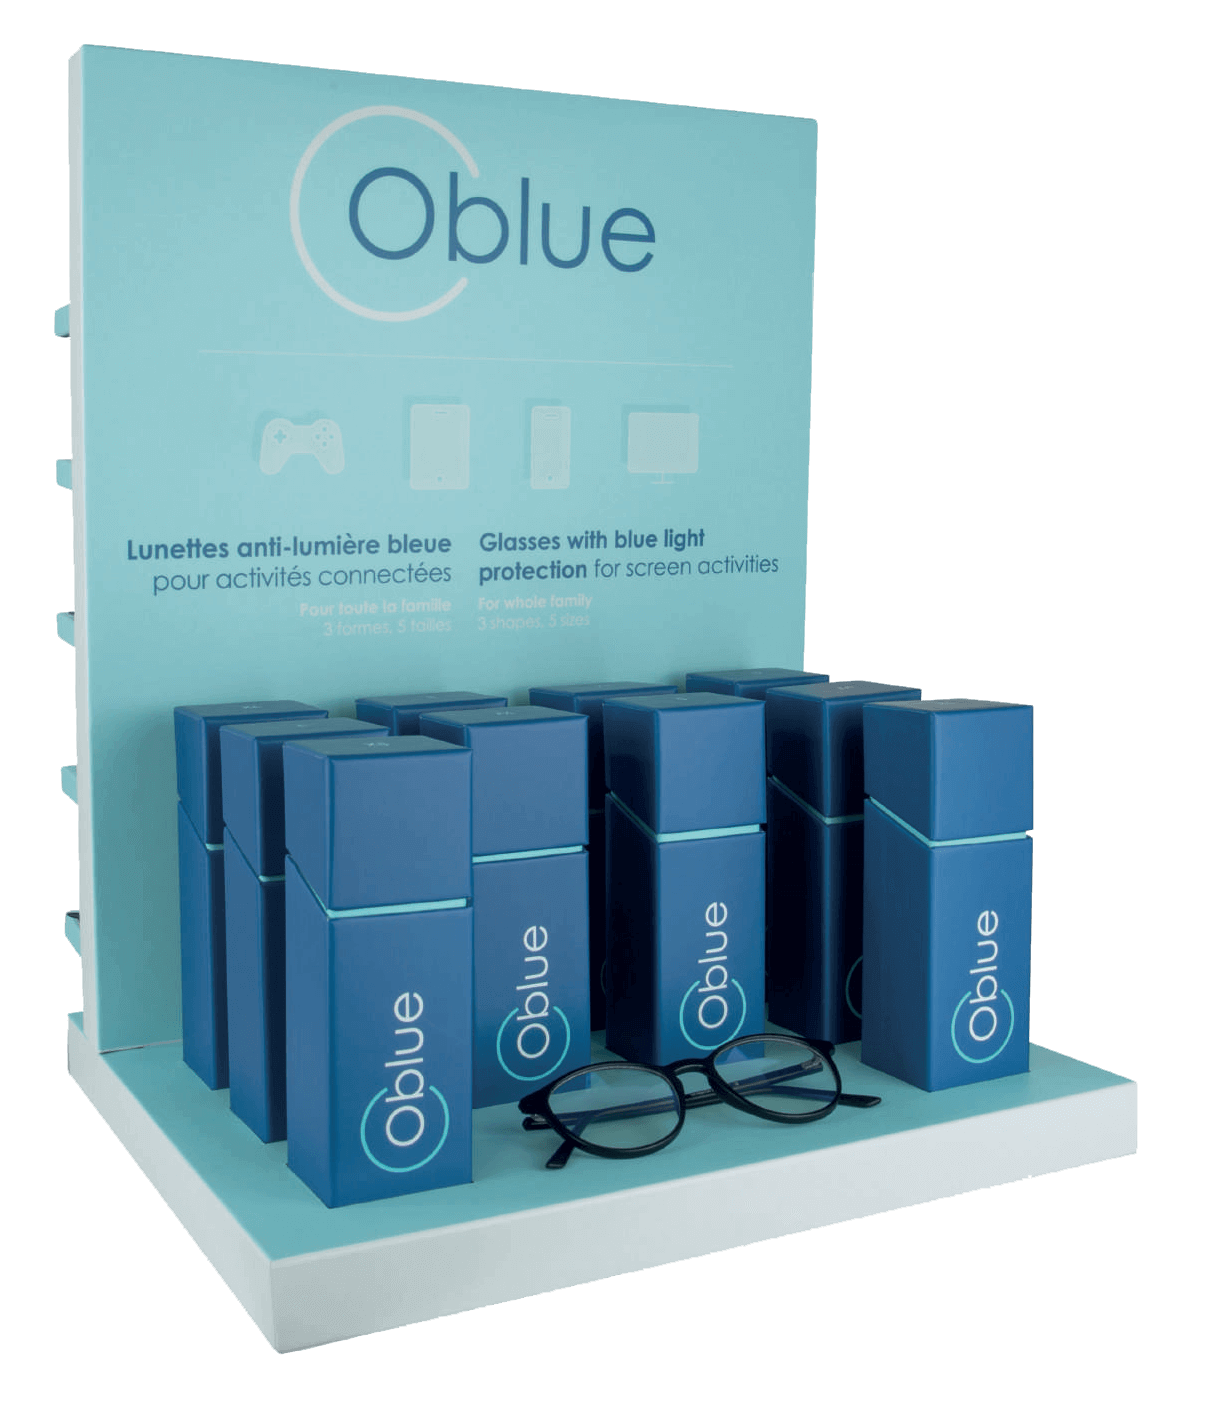 Espositore Oblue